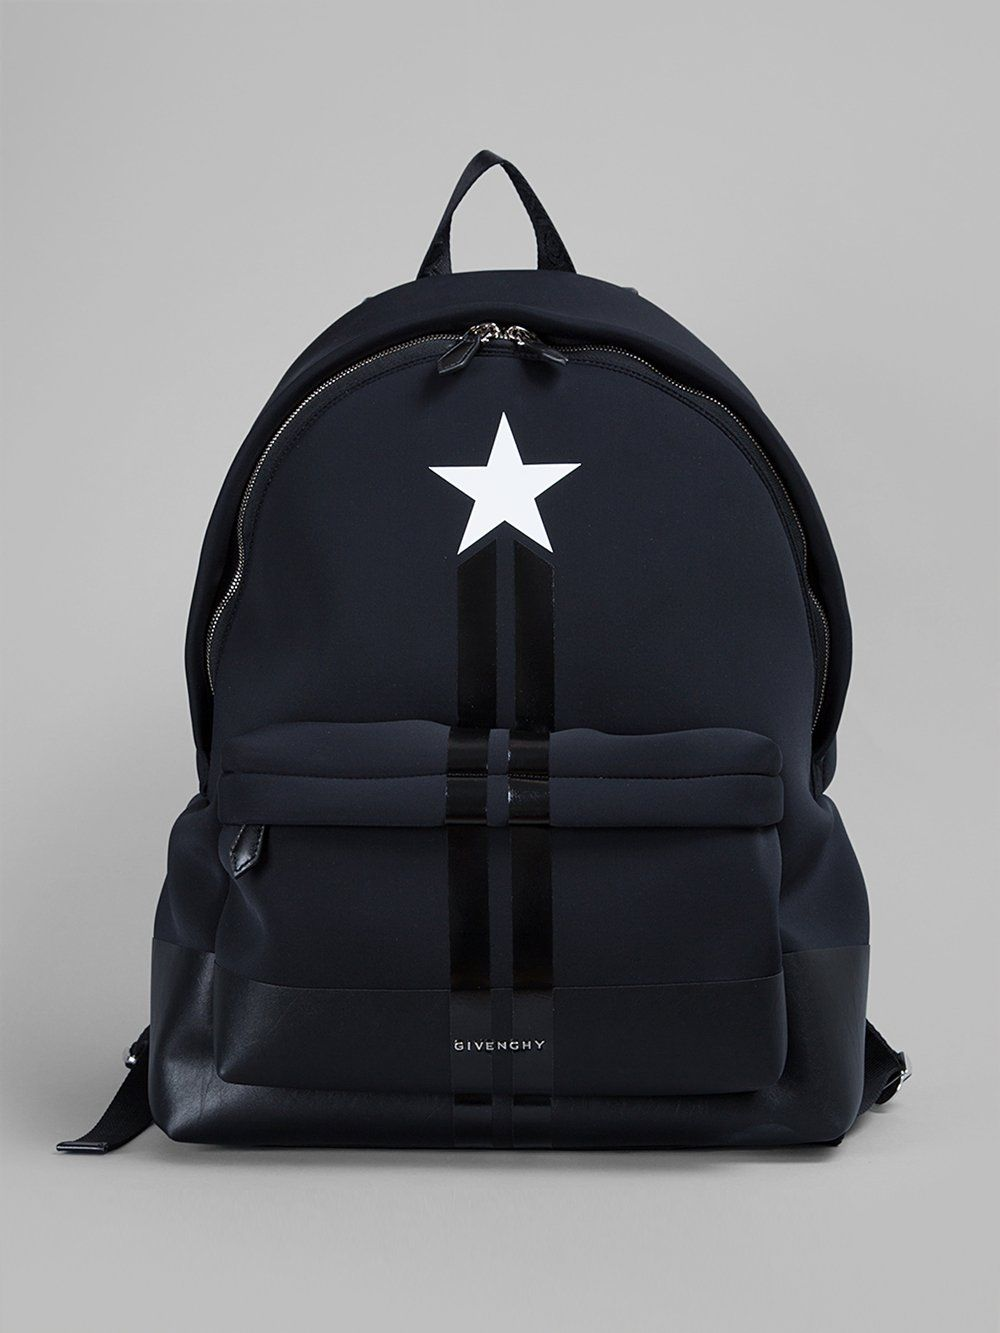 751cb92a27c Givenchy Star Stripe Neoprene Black or Navy, can t decide but I wish